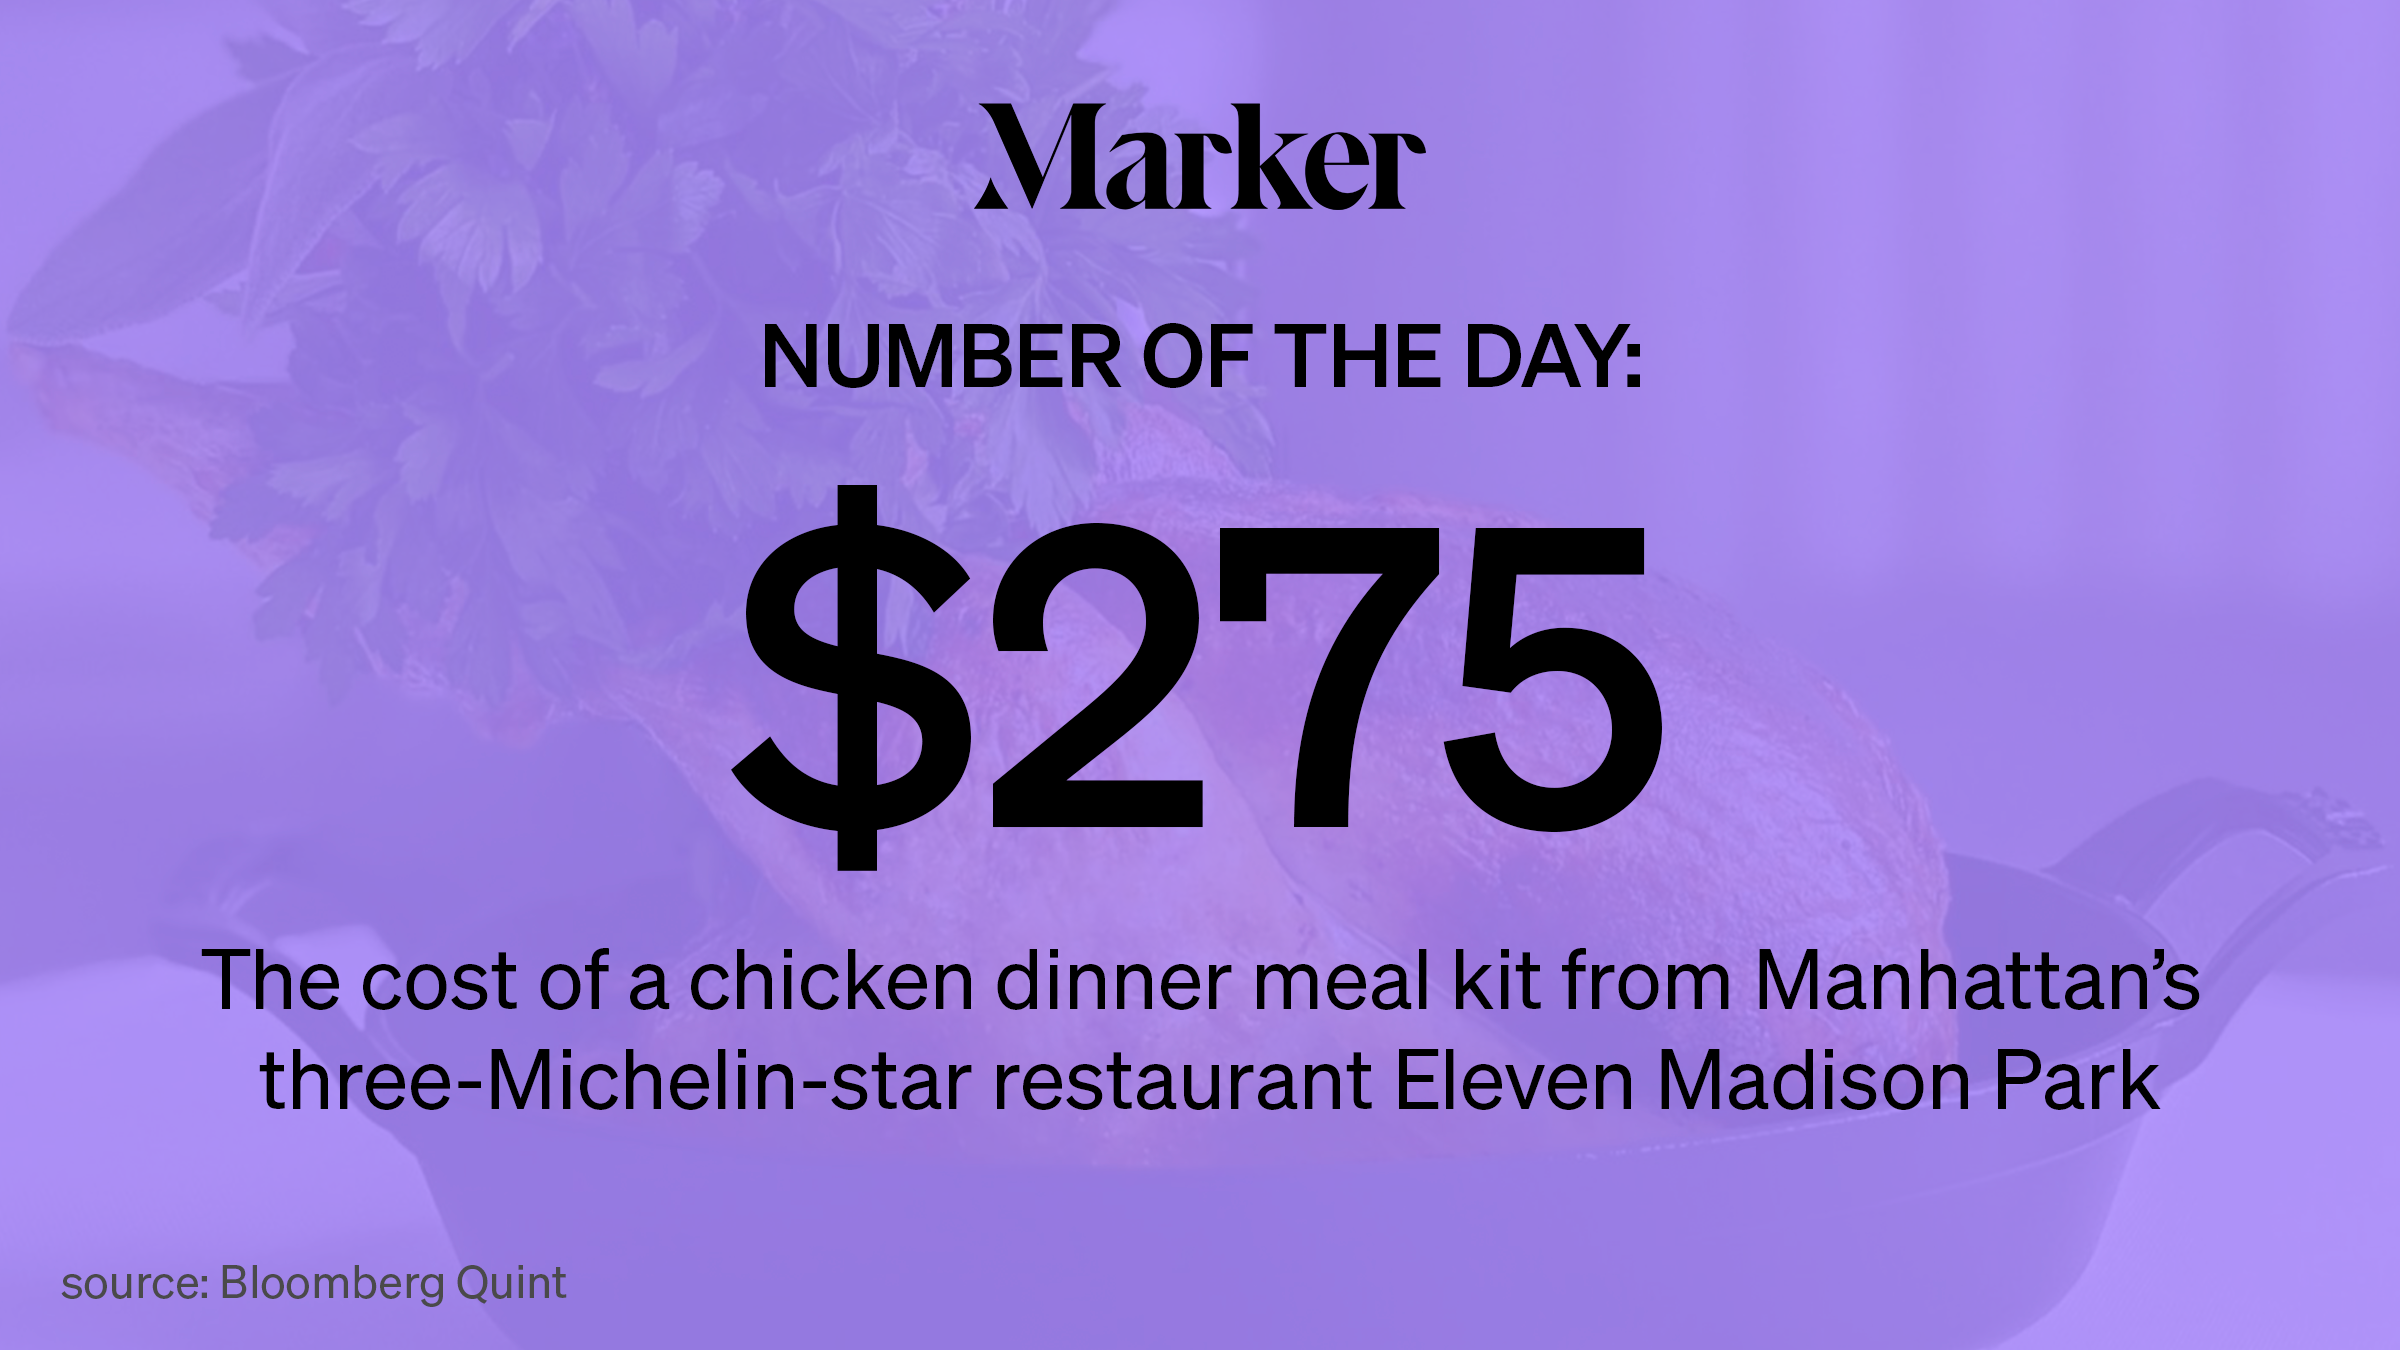 Marker # of the Day: $275 — The cost of a chicken dinner meal from Manhattan's 3-Michelin-star restaurant Eleven Madison Park